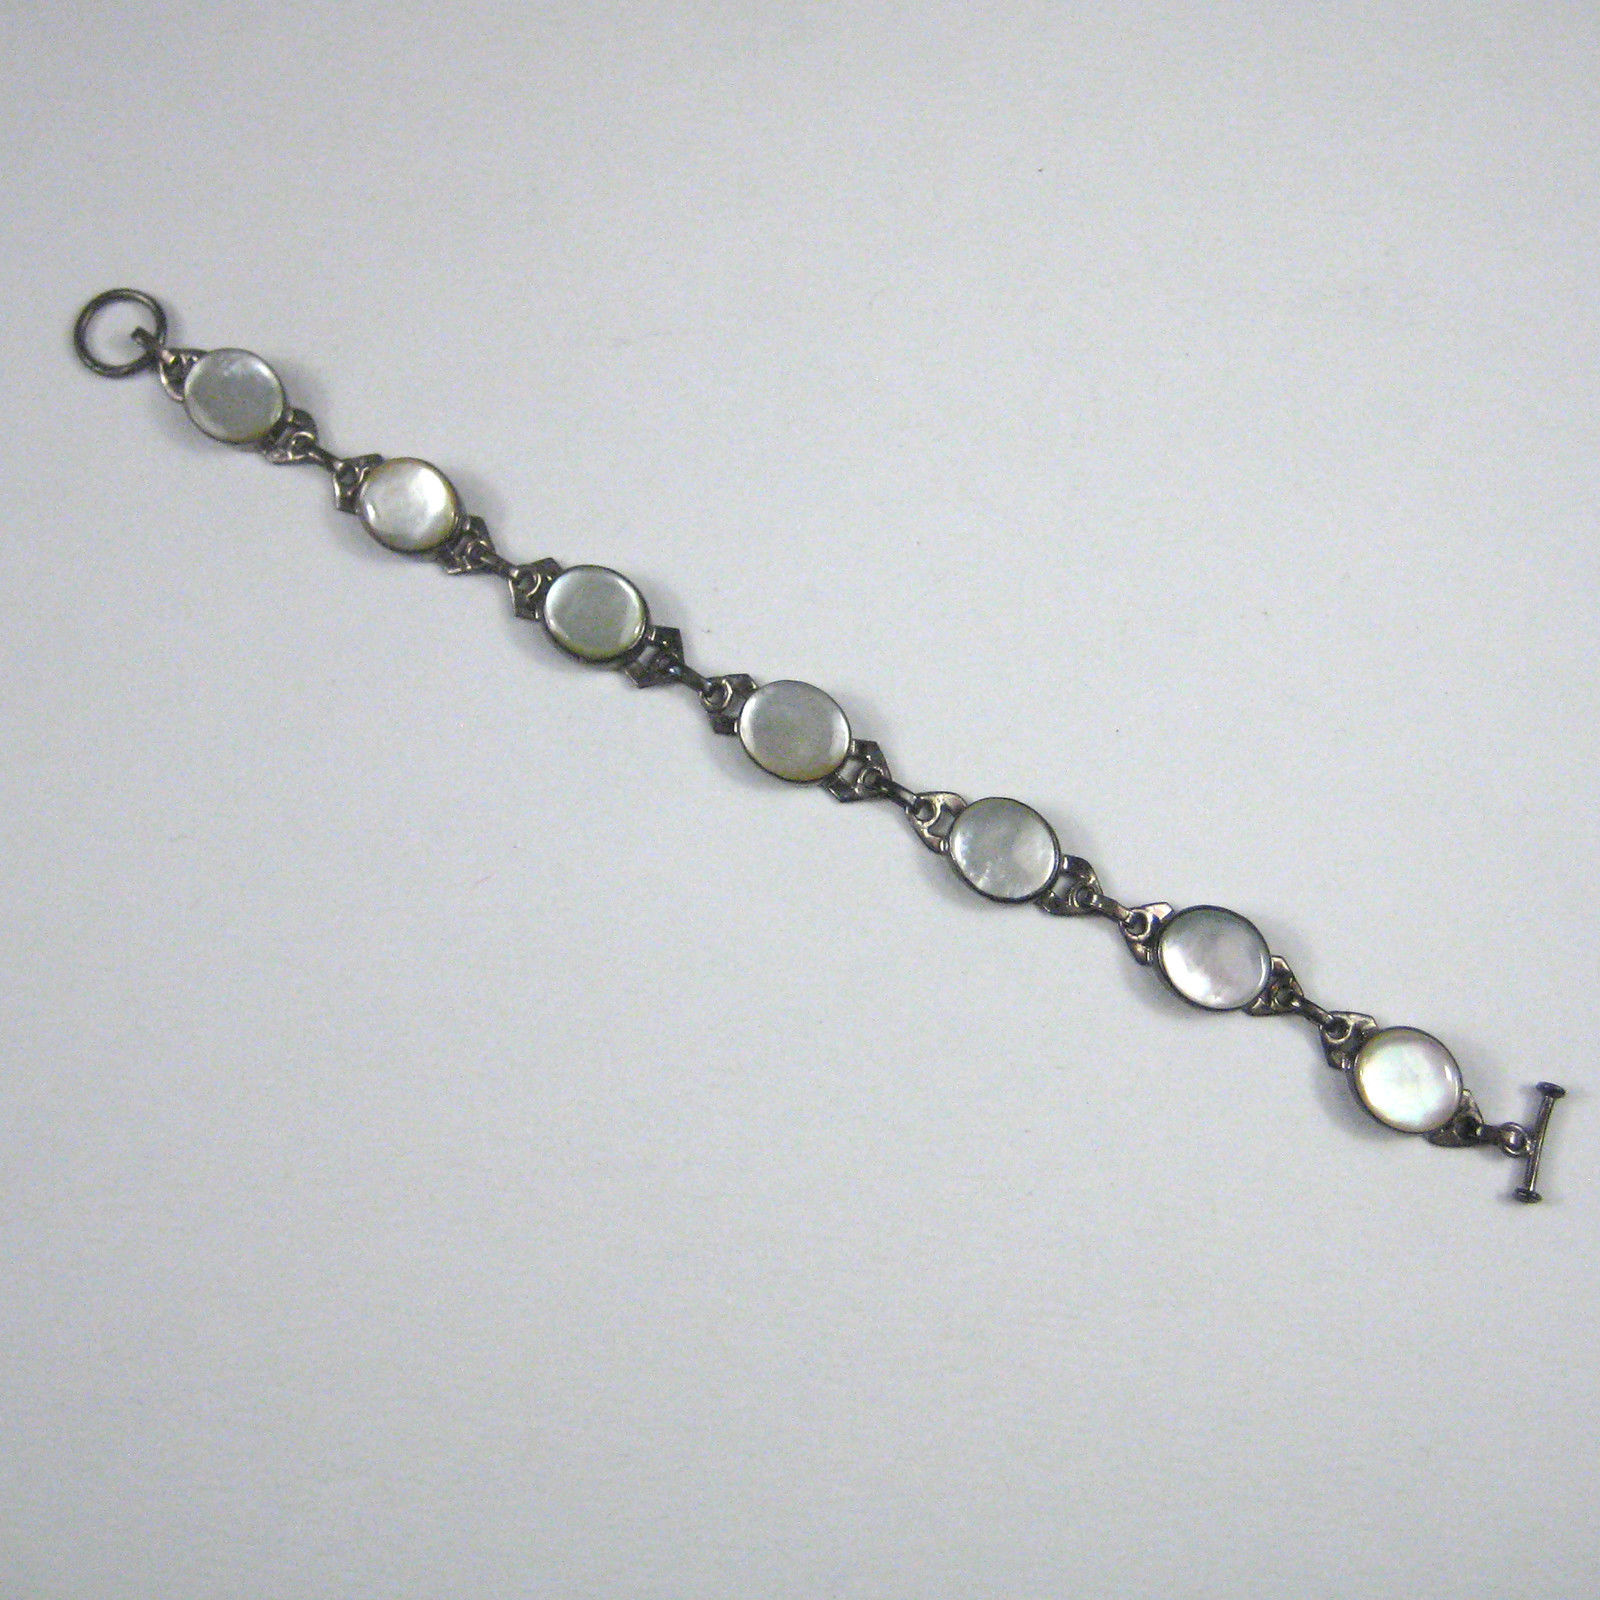 Art Deco Bracelet Silver Mother of Pearl Unsigned Toggle Clasp 14 g